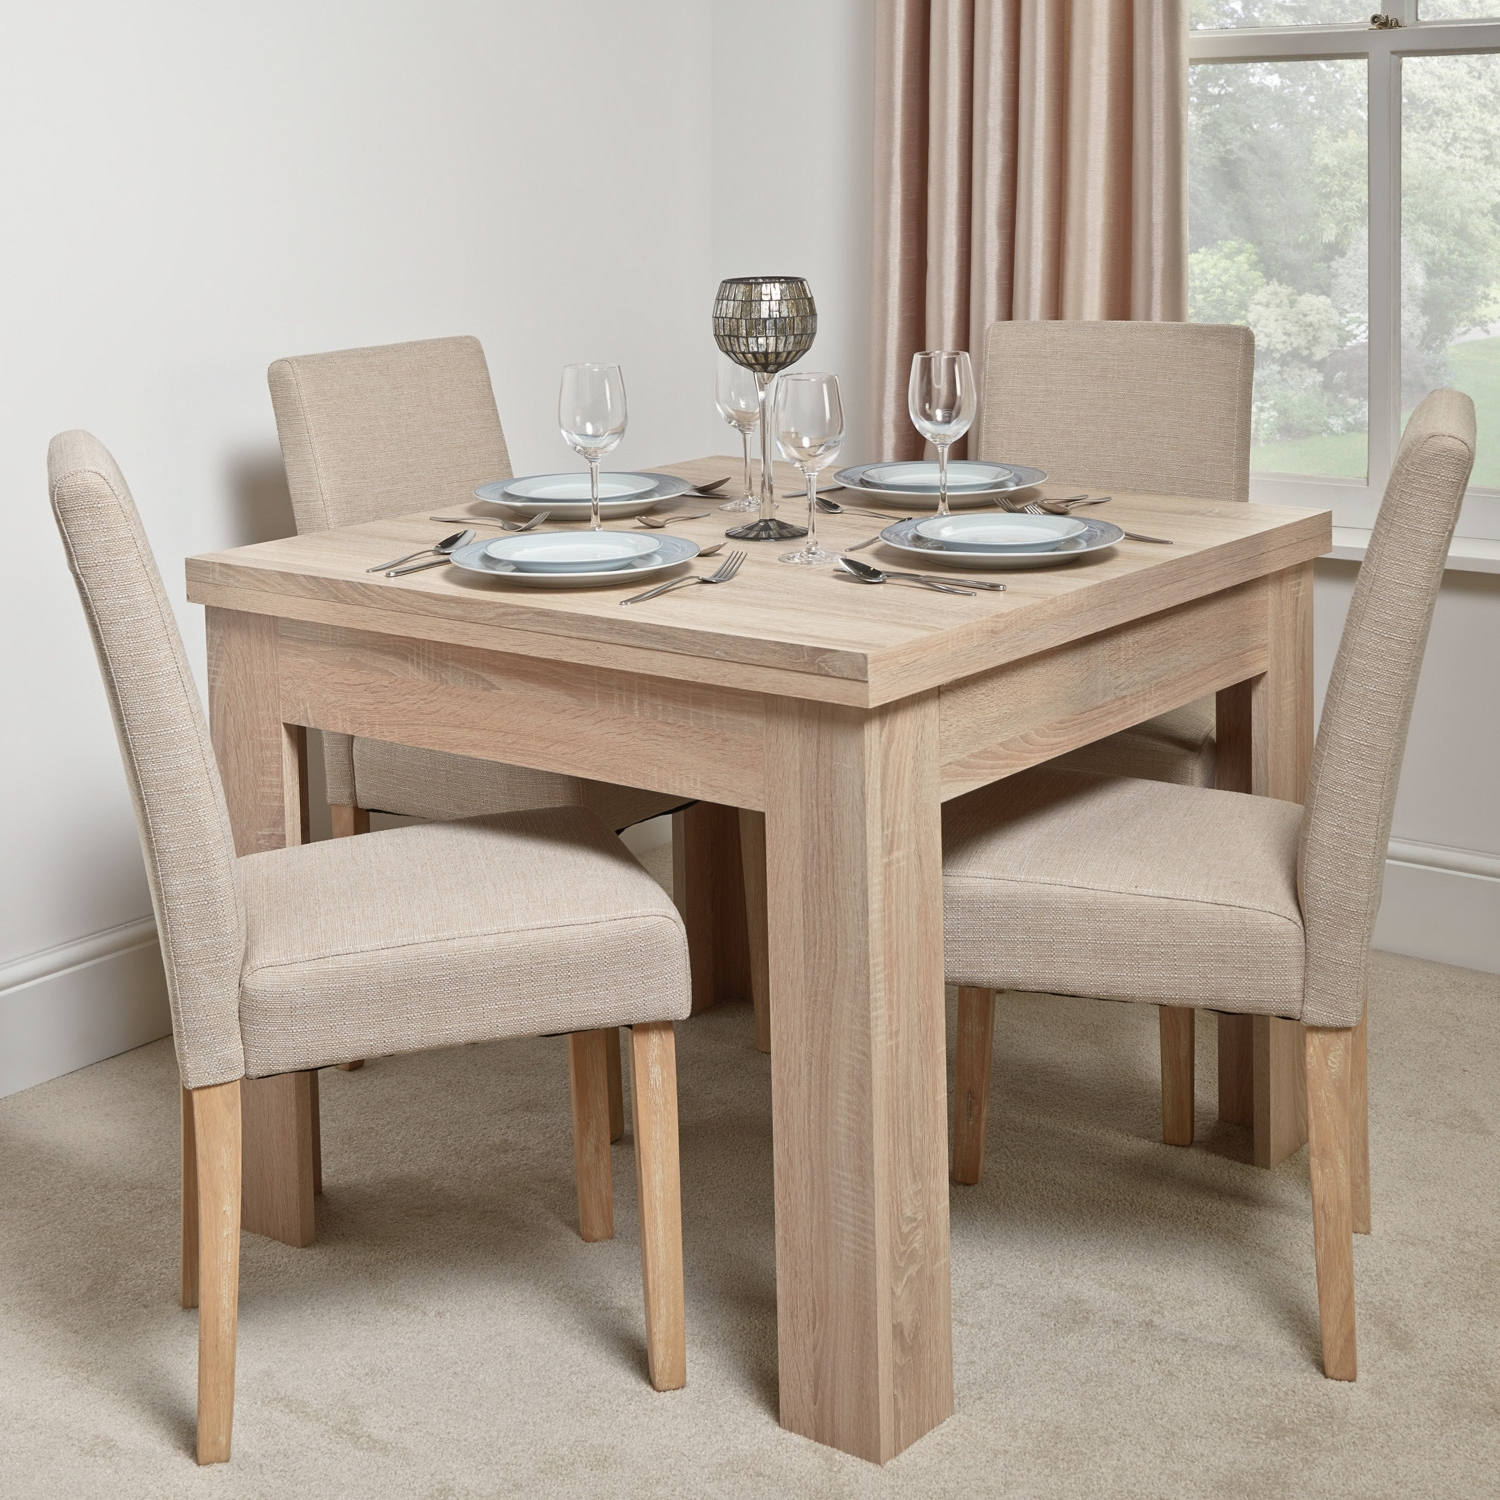 Extendable Dining Tables Within Most Up To Date Calpe Flip Extending Dining Table (View 11 of 25)